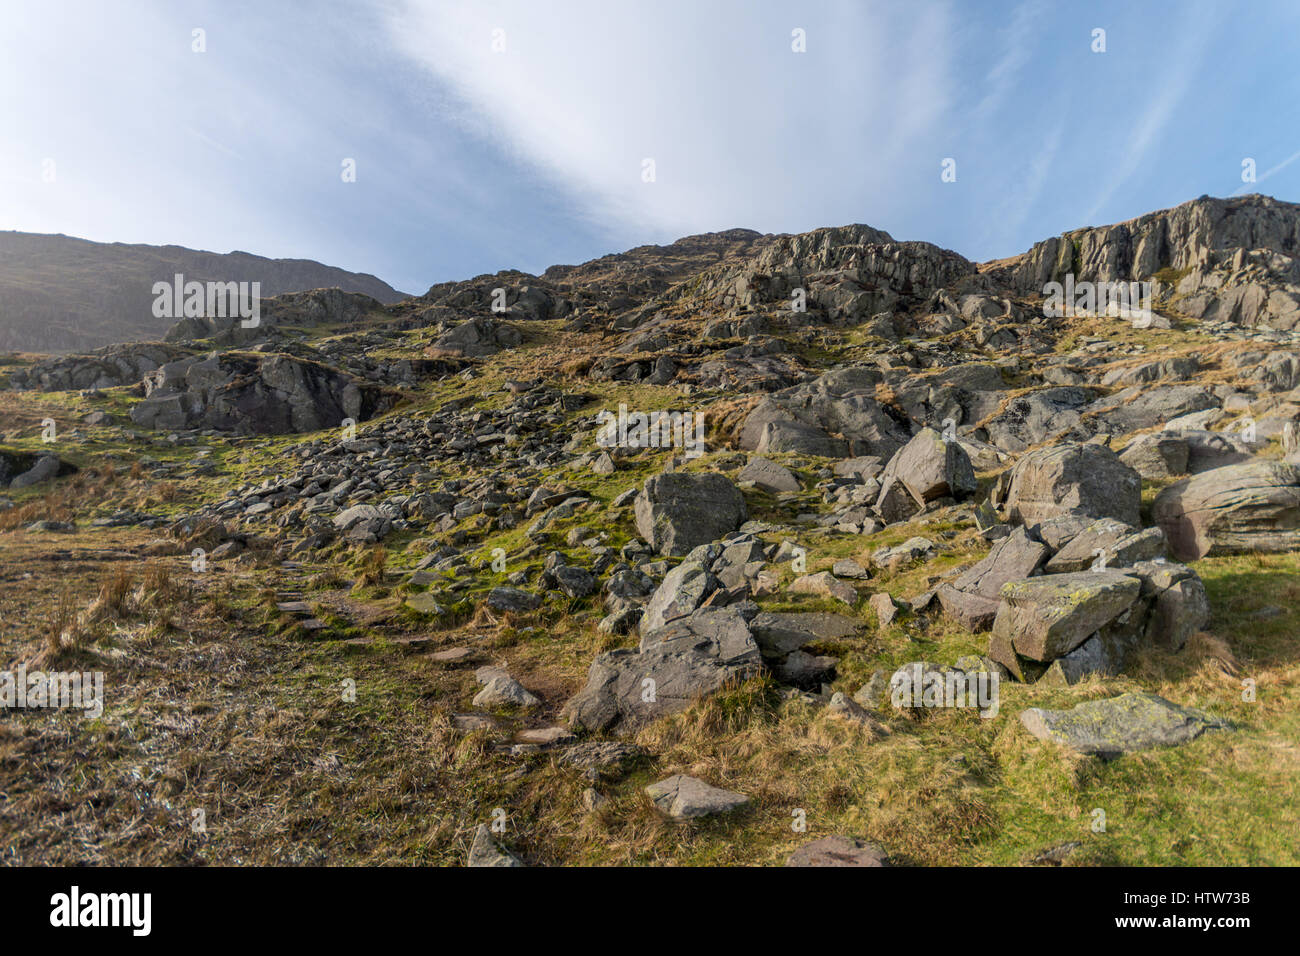 The sides of Red Screes is a craggy mountainside strewn with rocks - Stock Image